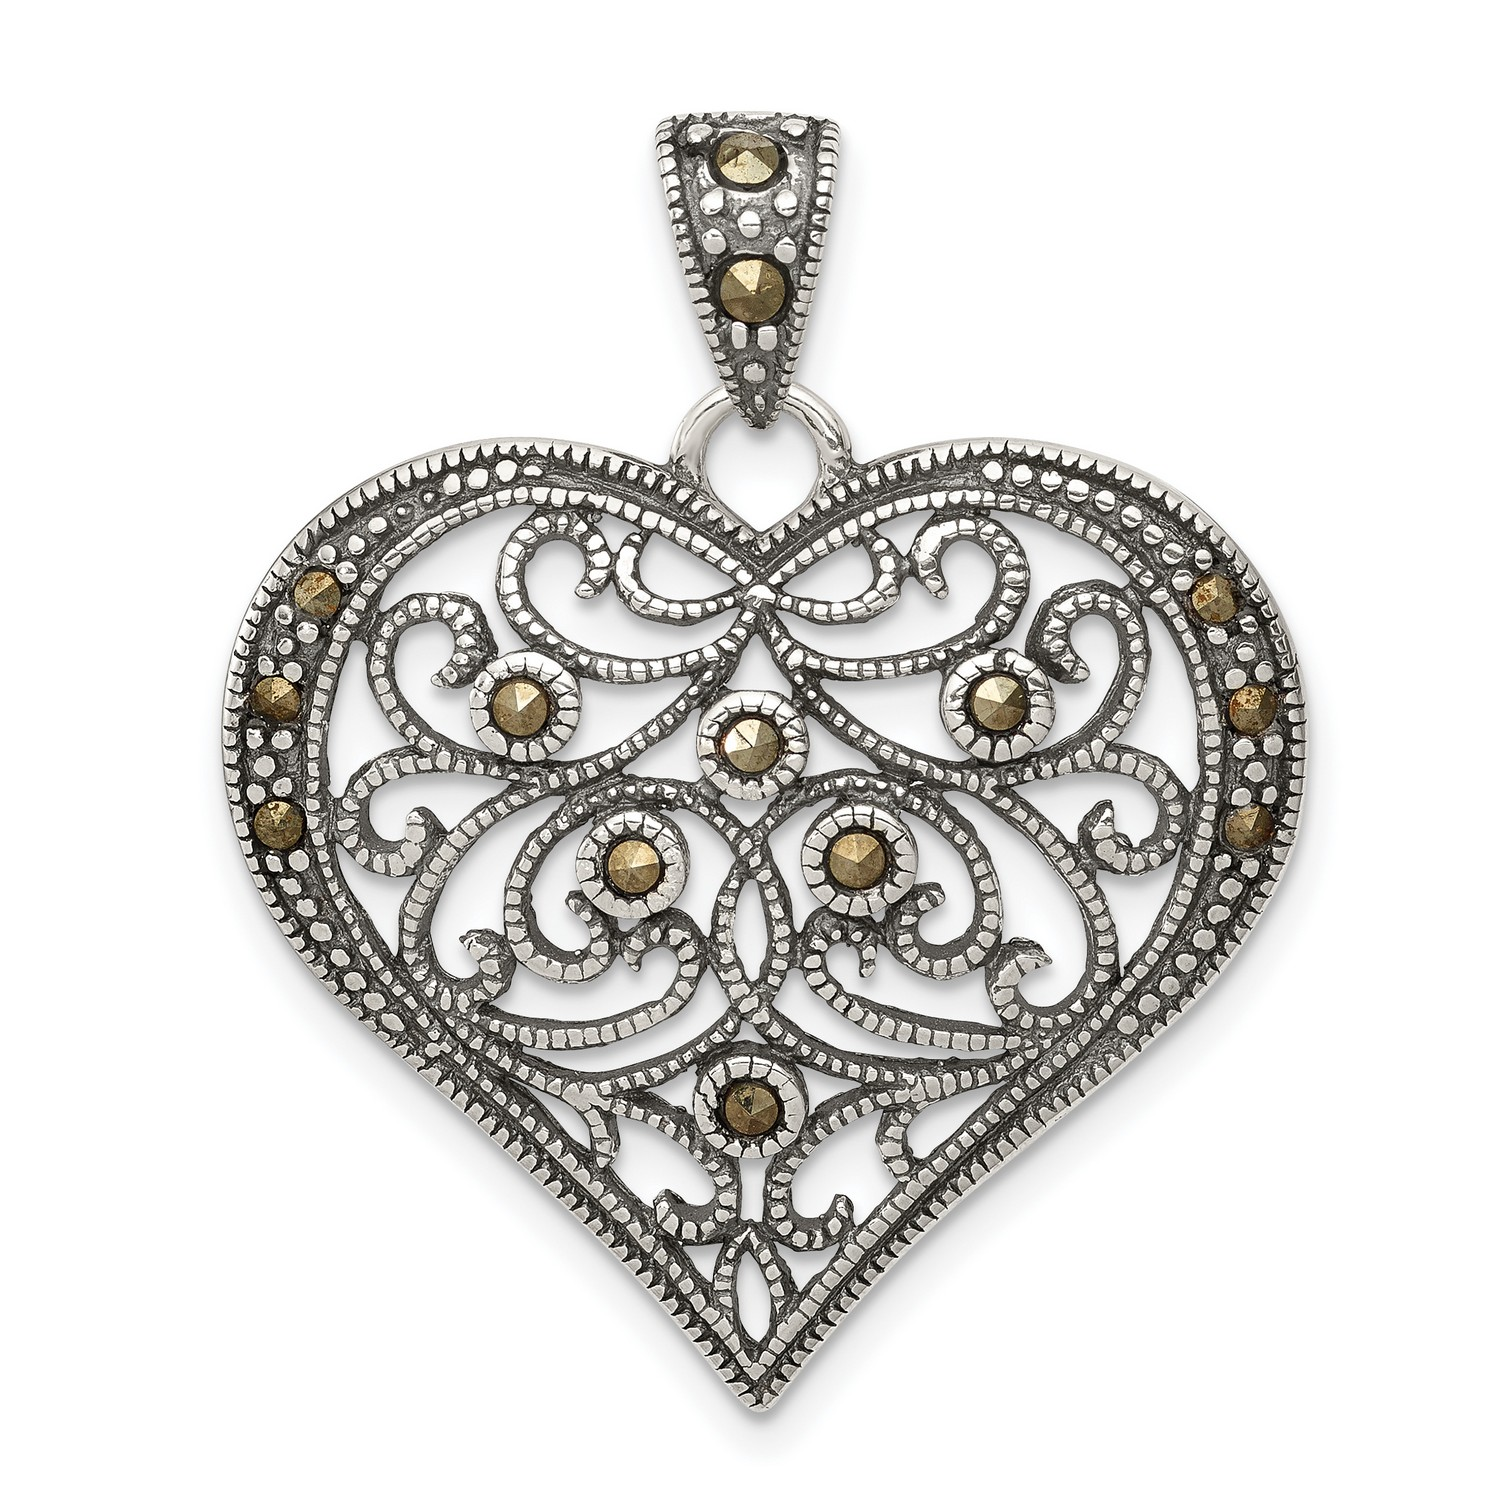 Solid 925 Sterling Silver Marcasite Pendant Charm